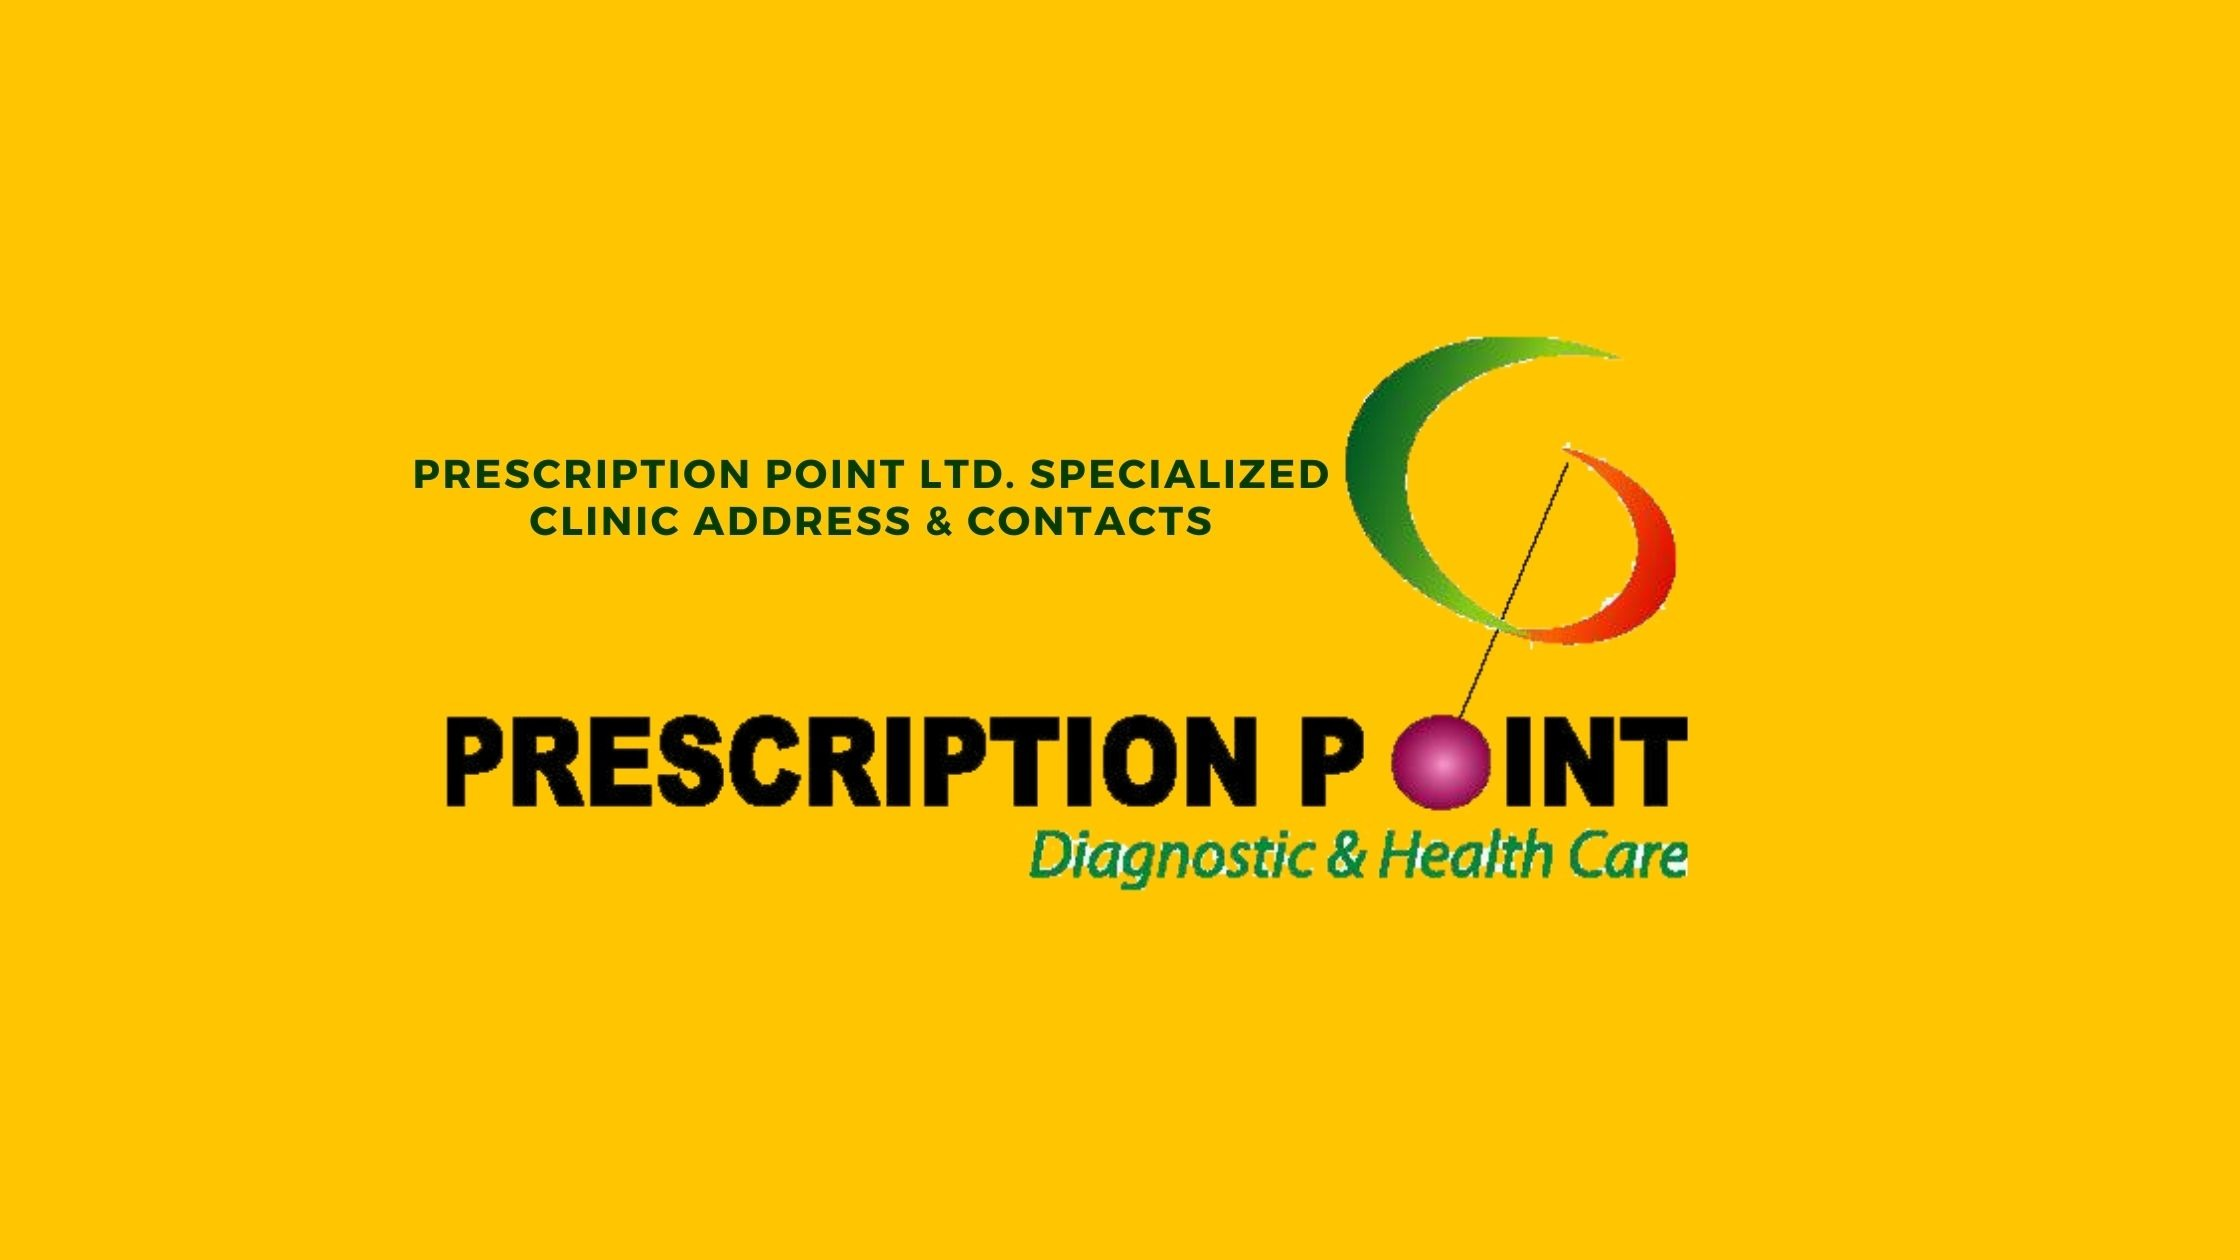 Prescription Point Ltd specialized Clinic ADDRESS & CONTACTS